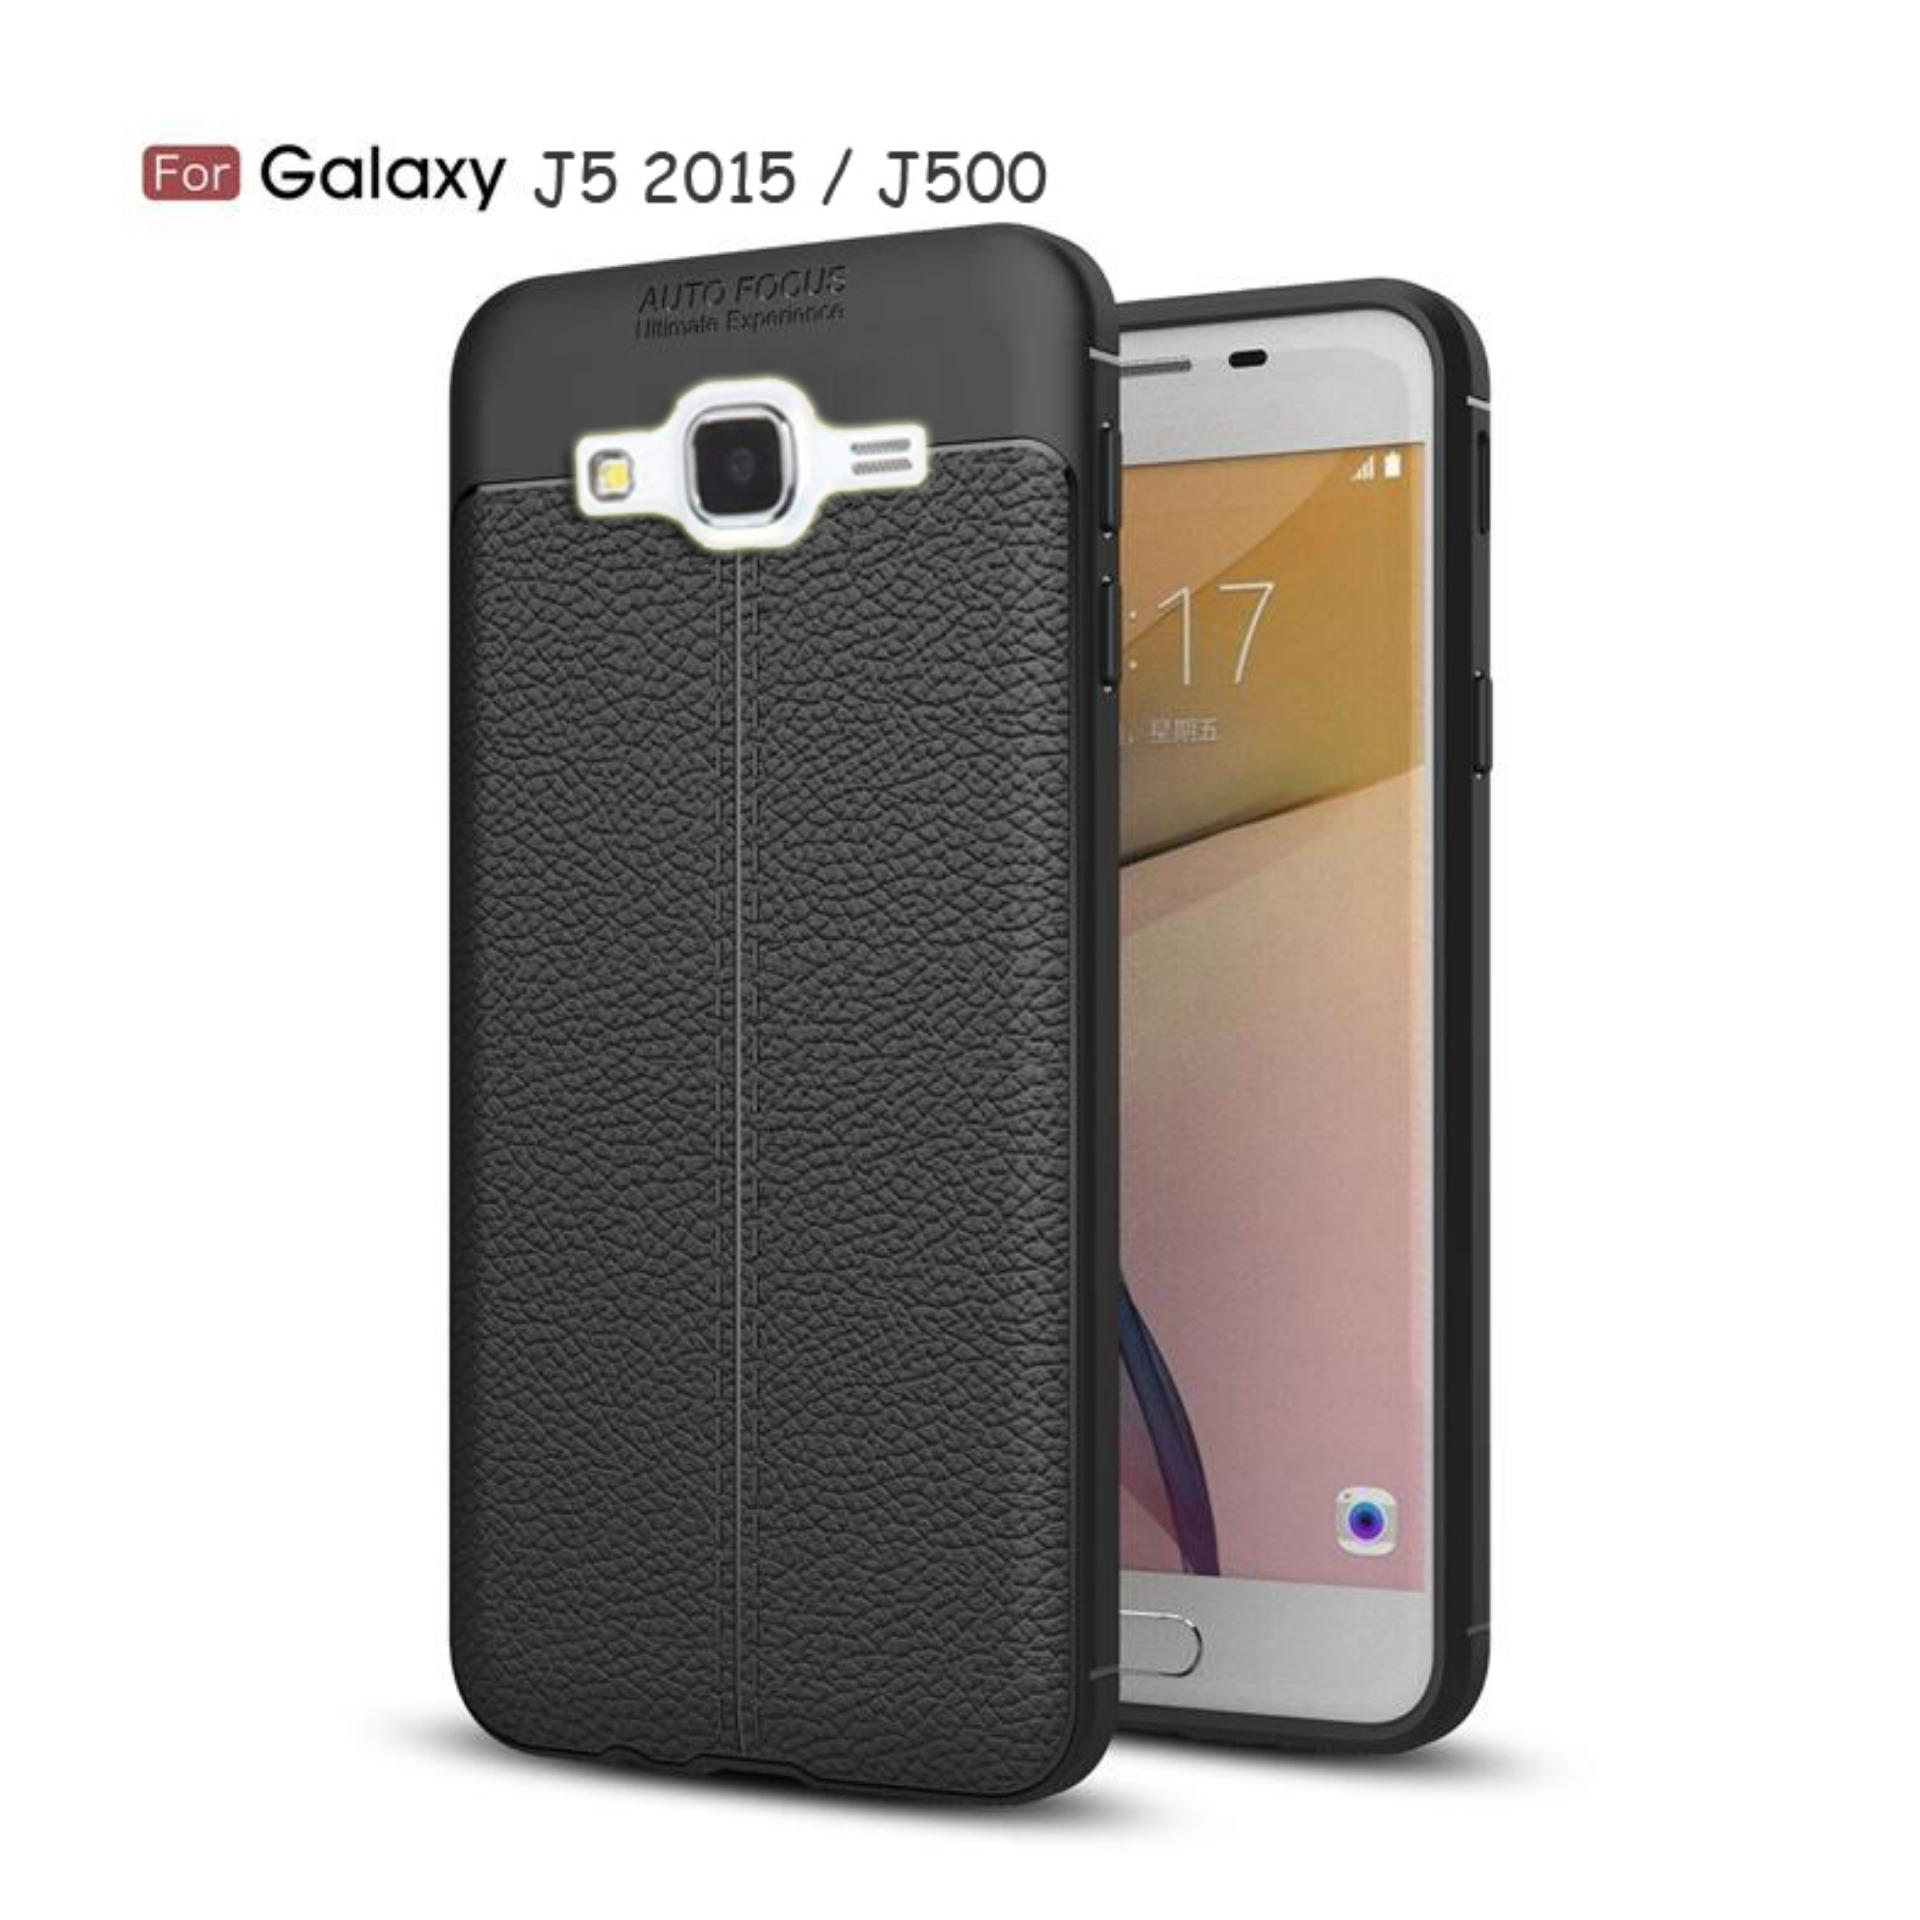 JAK - Softcase Leather / Case Auto Focus / Case Ultimate for Samsung Galaxy J5 / J5 2015 / J500 ( 5.0